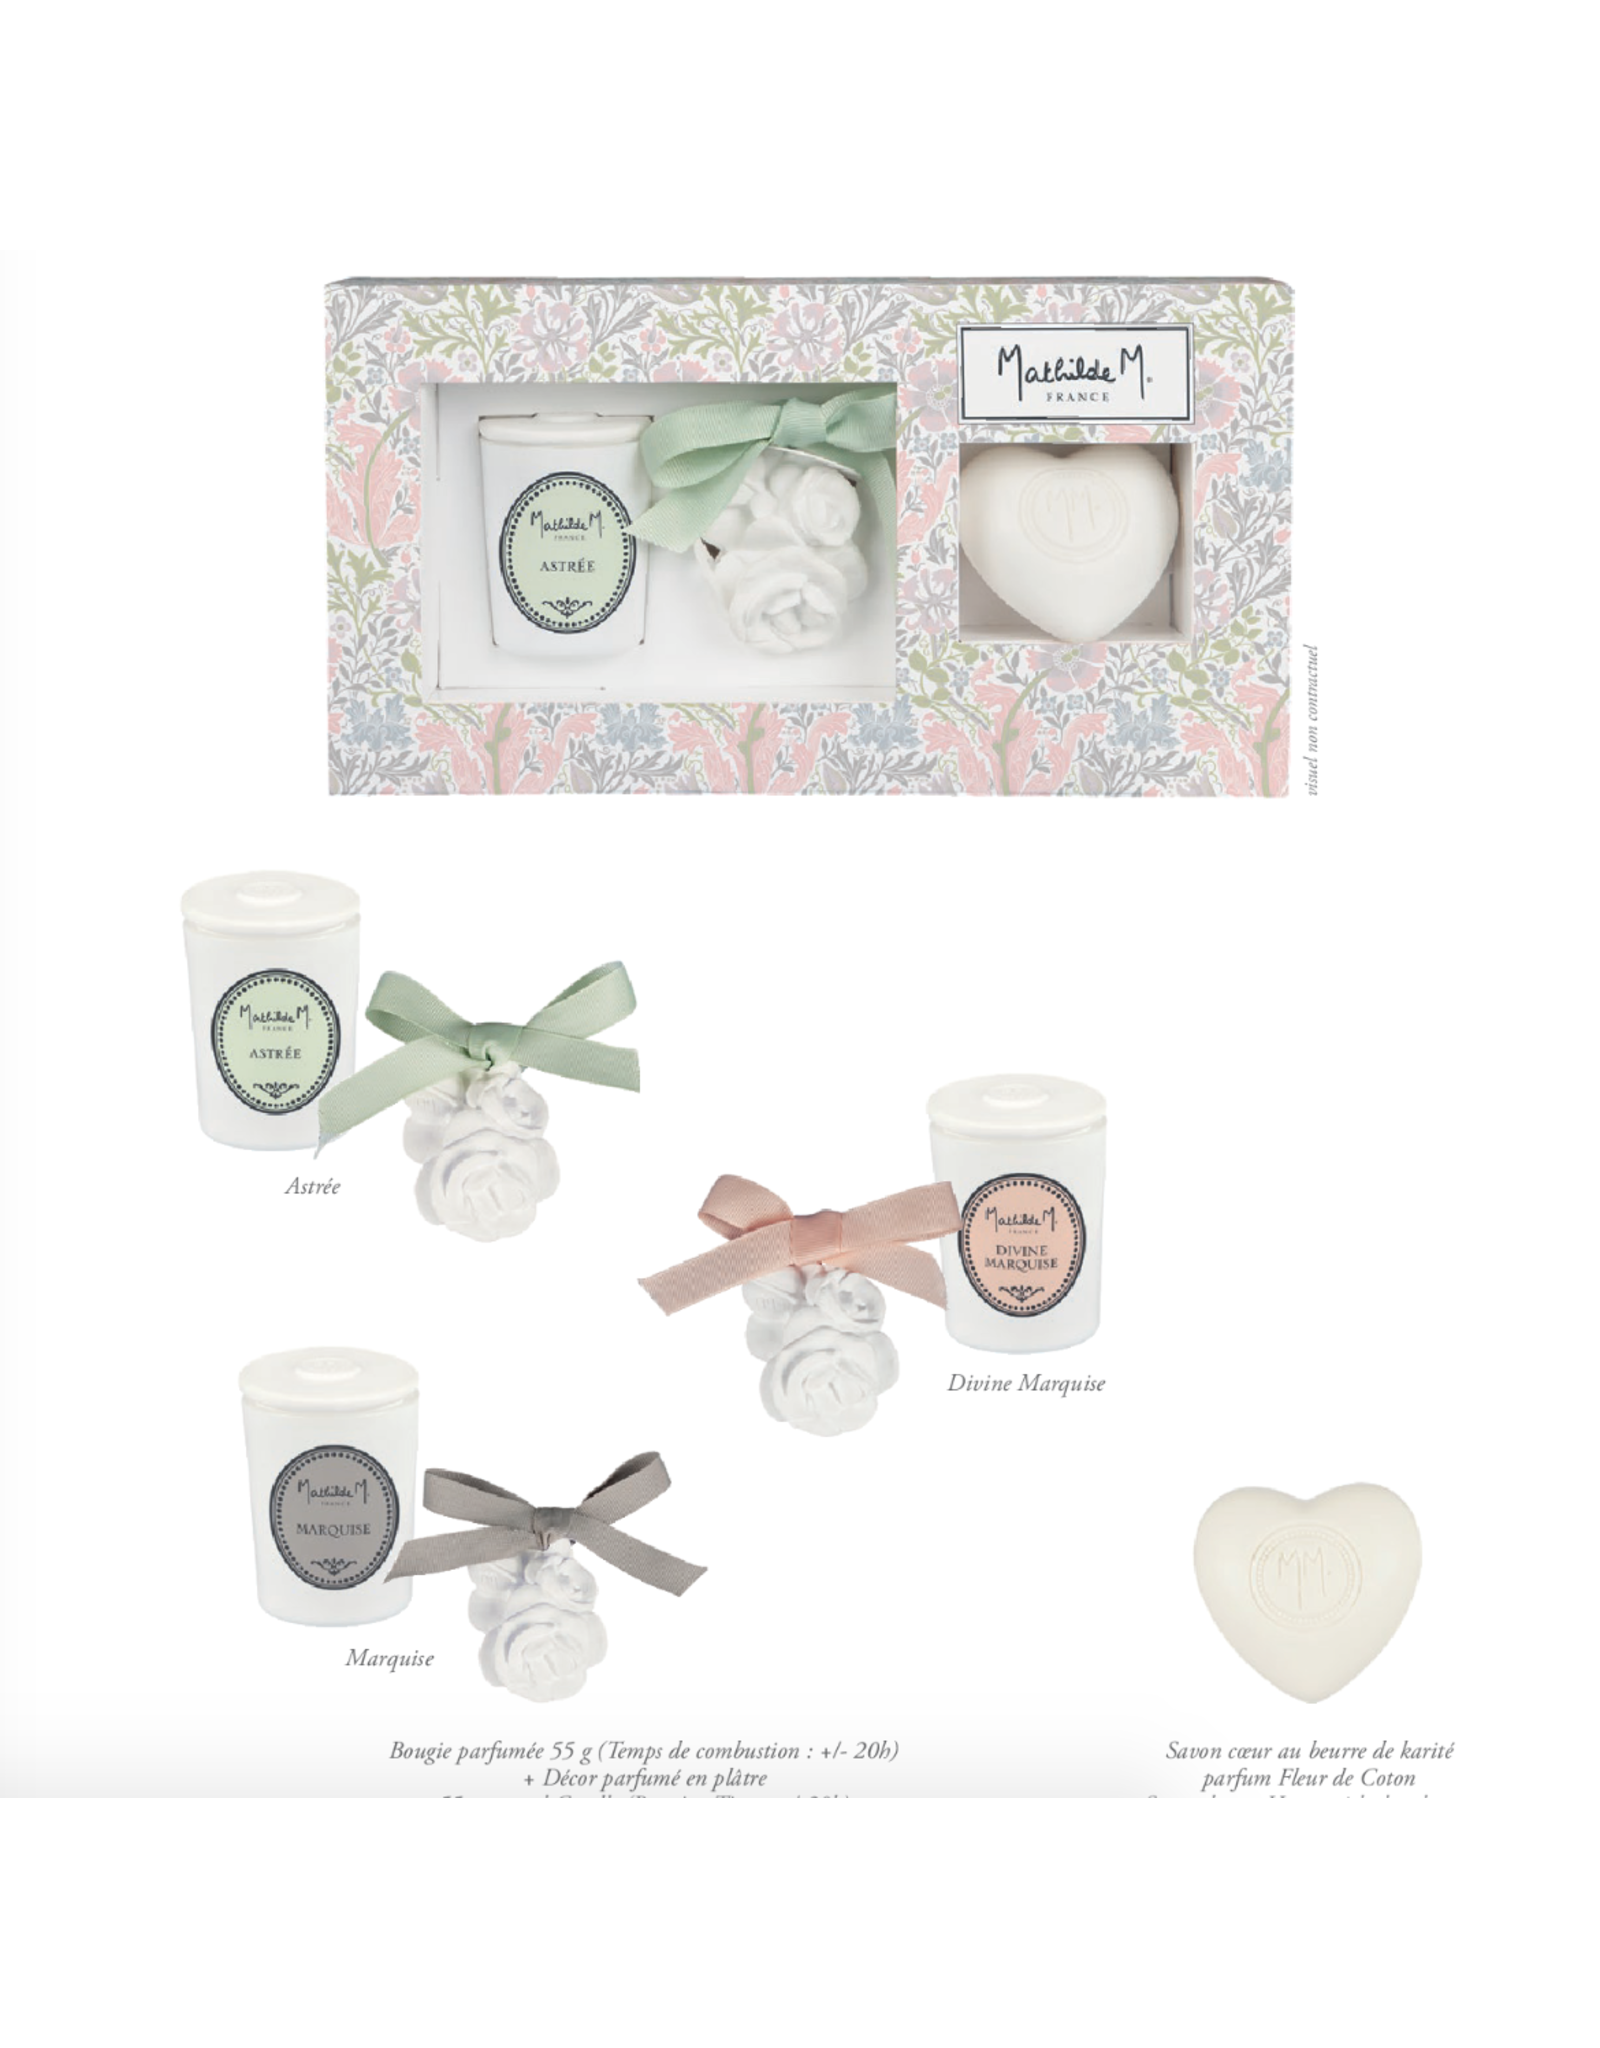 Mathilde M Marquise - Giftbox - Limited Edition